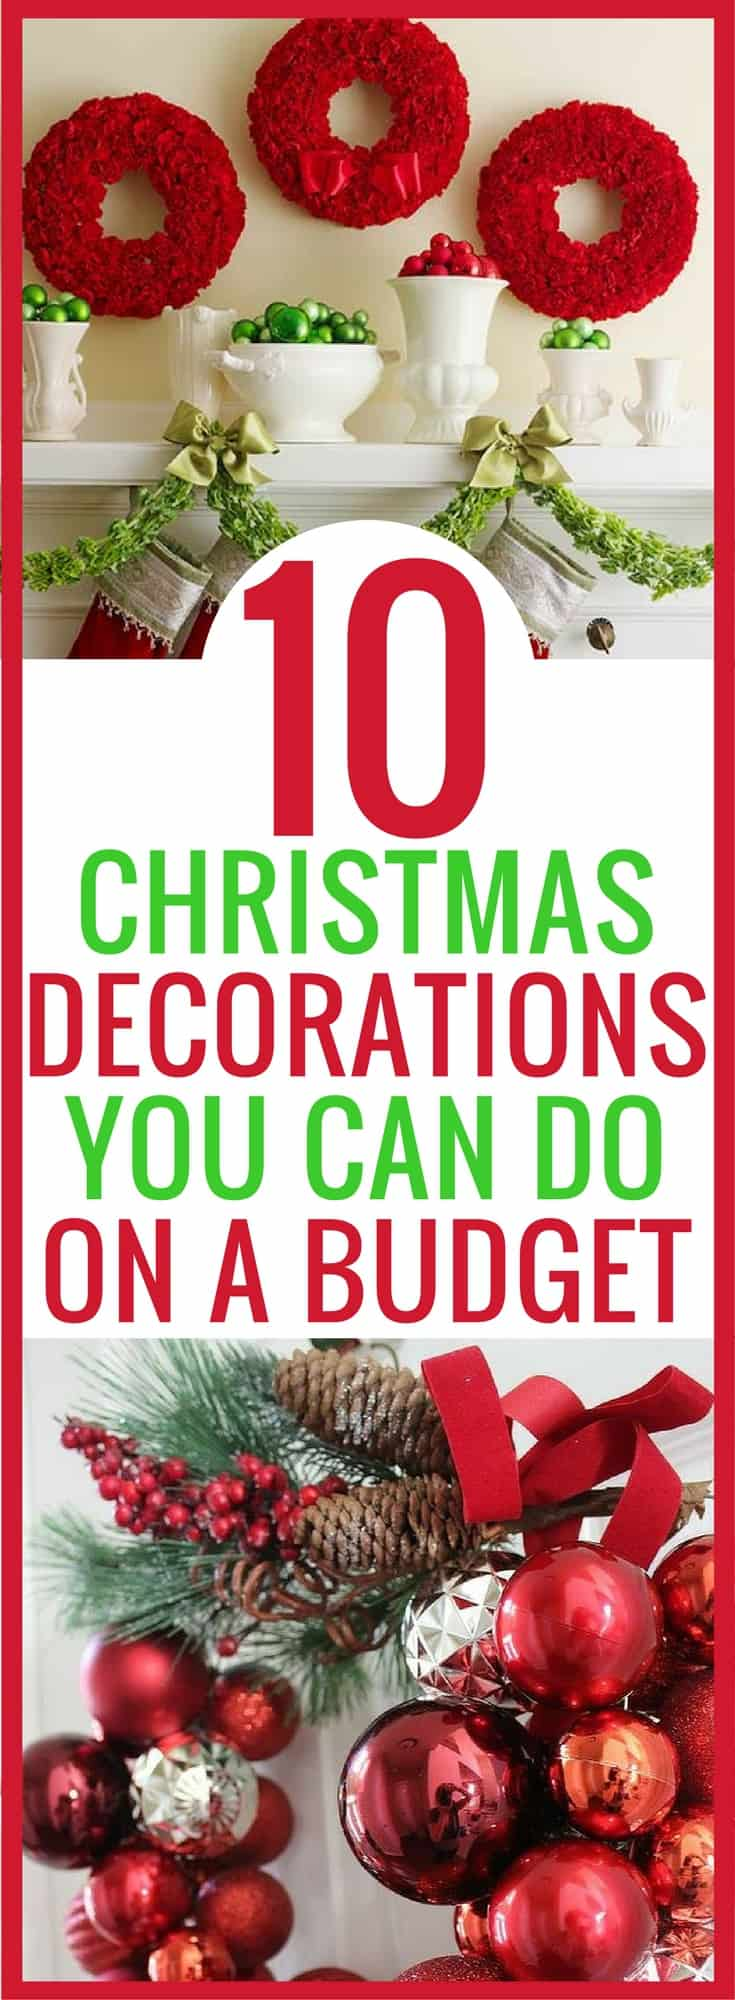 10 Amazing Christmas Decorations You Can Do On A Budget The Savvy Couple